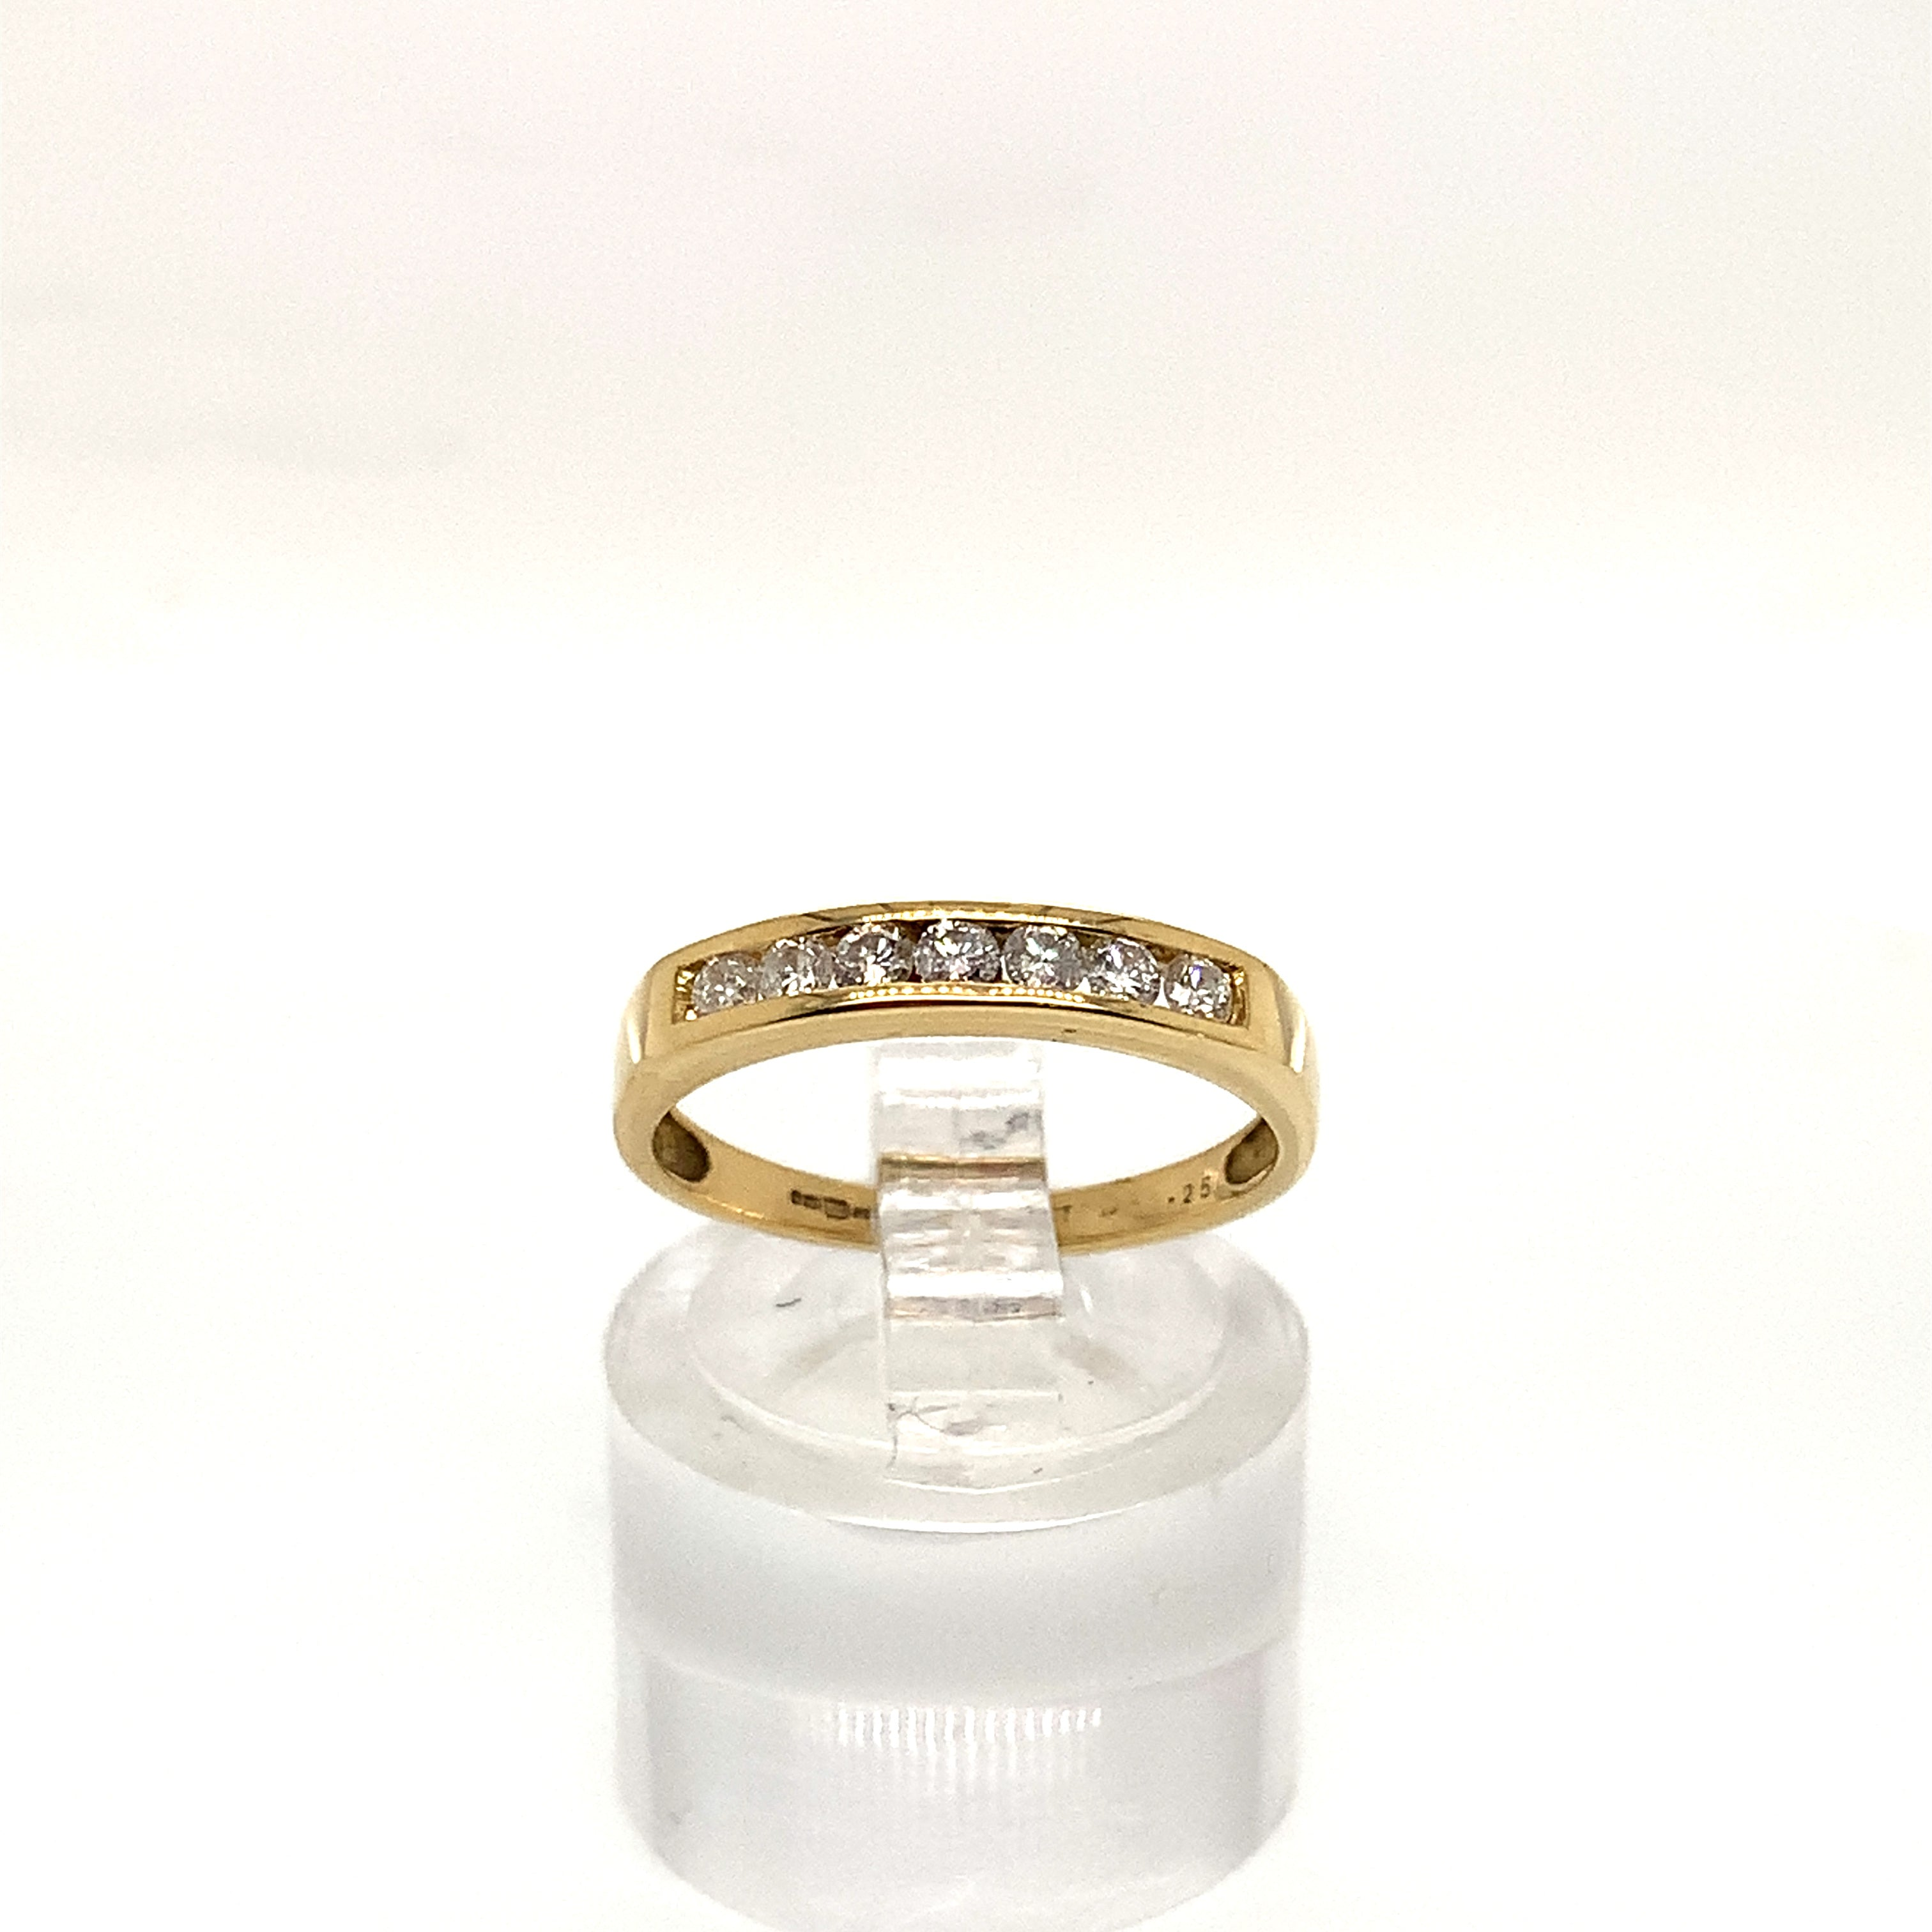 18ct Yellow Gold 7 Stone Channel Set Diamond Ring